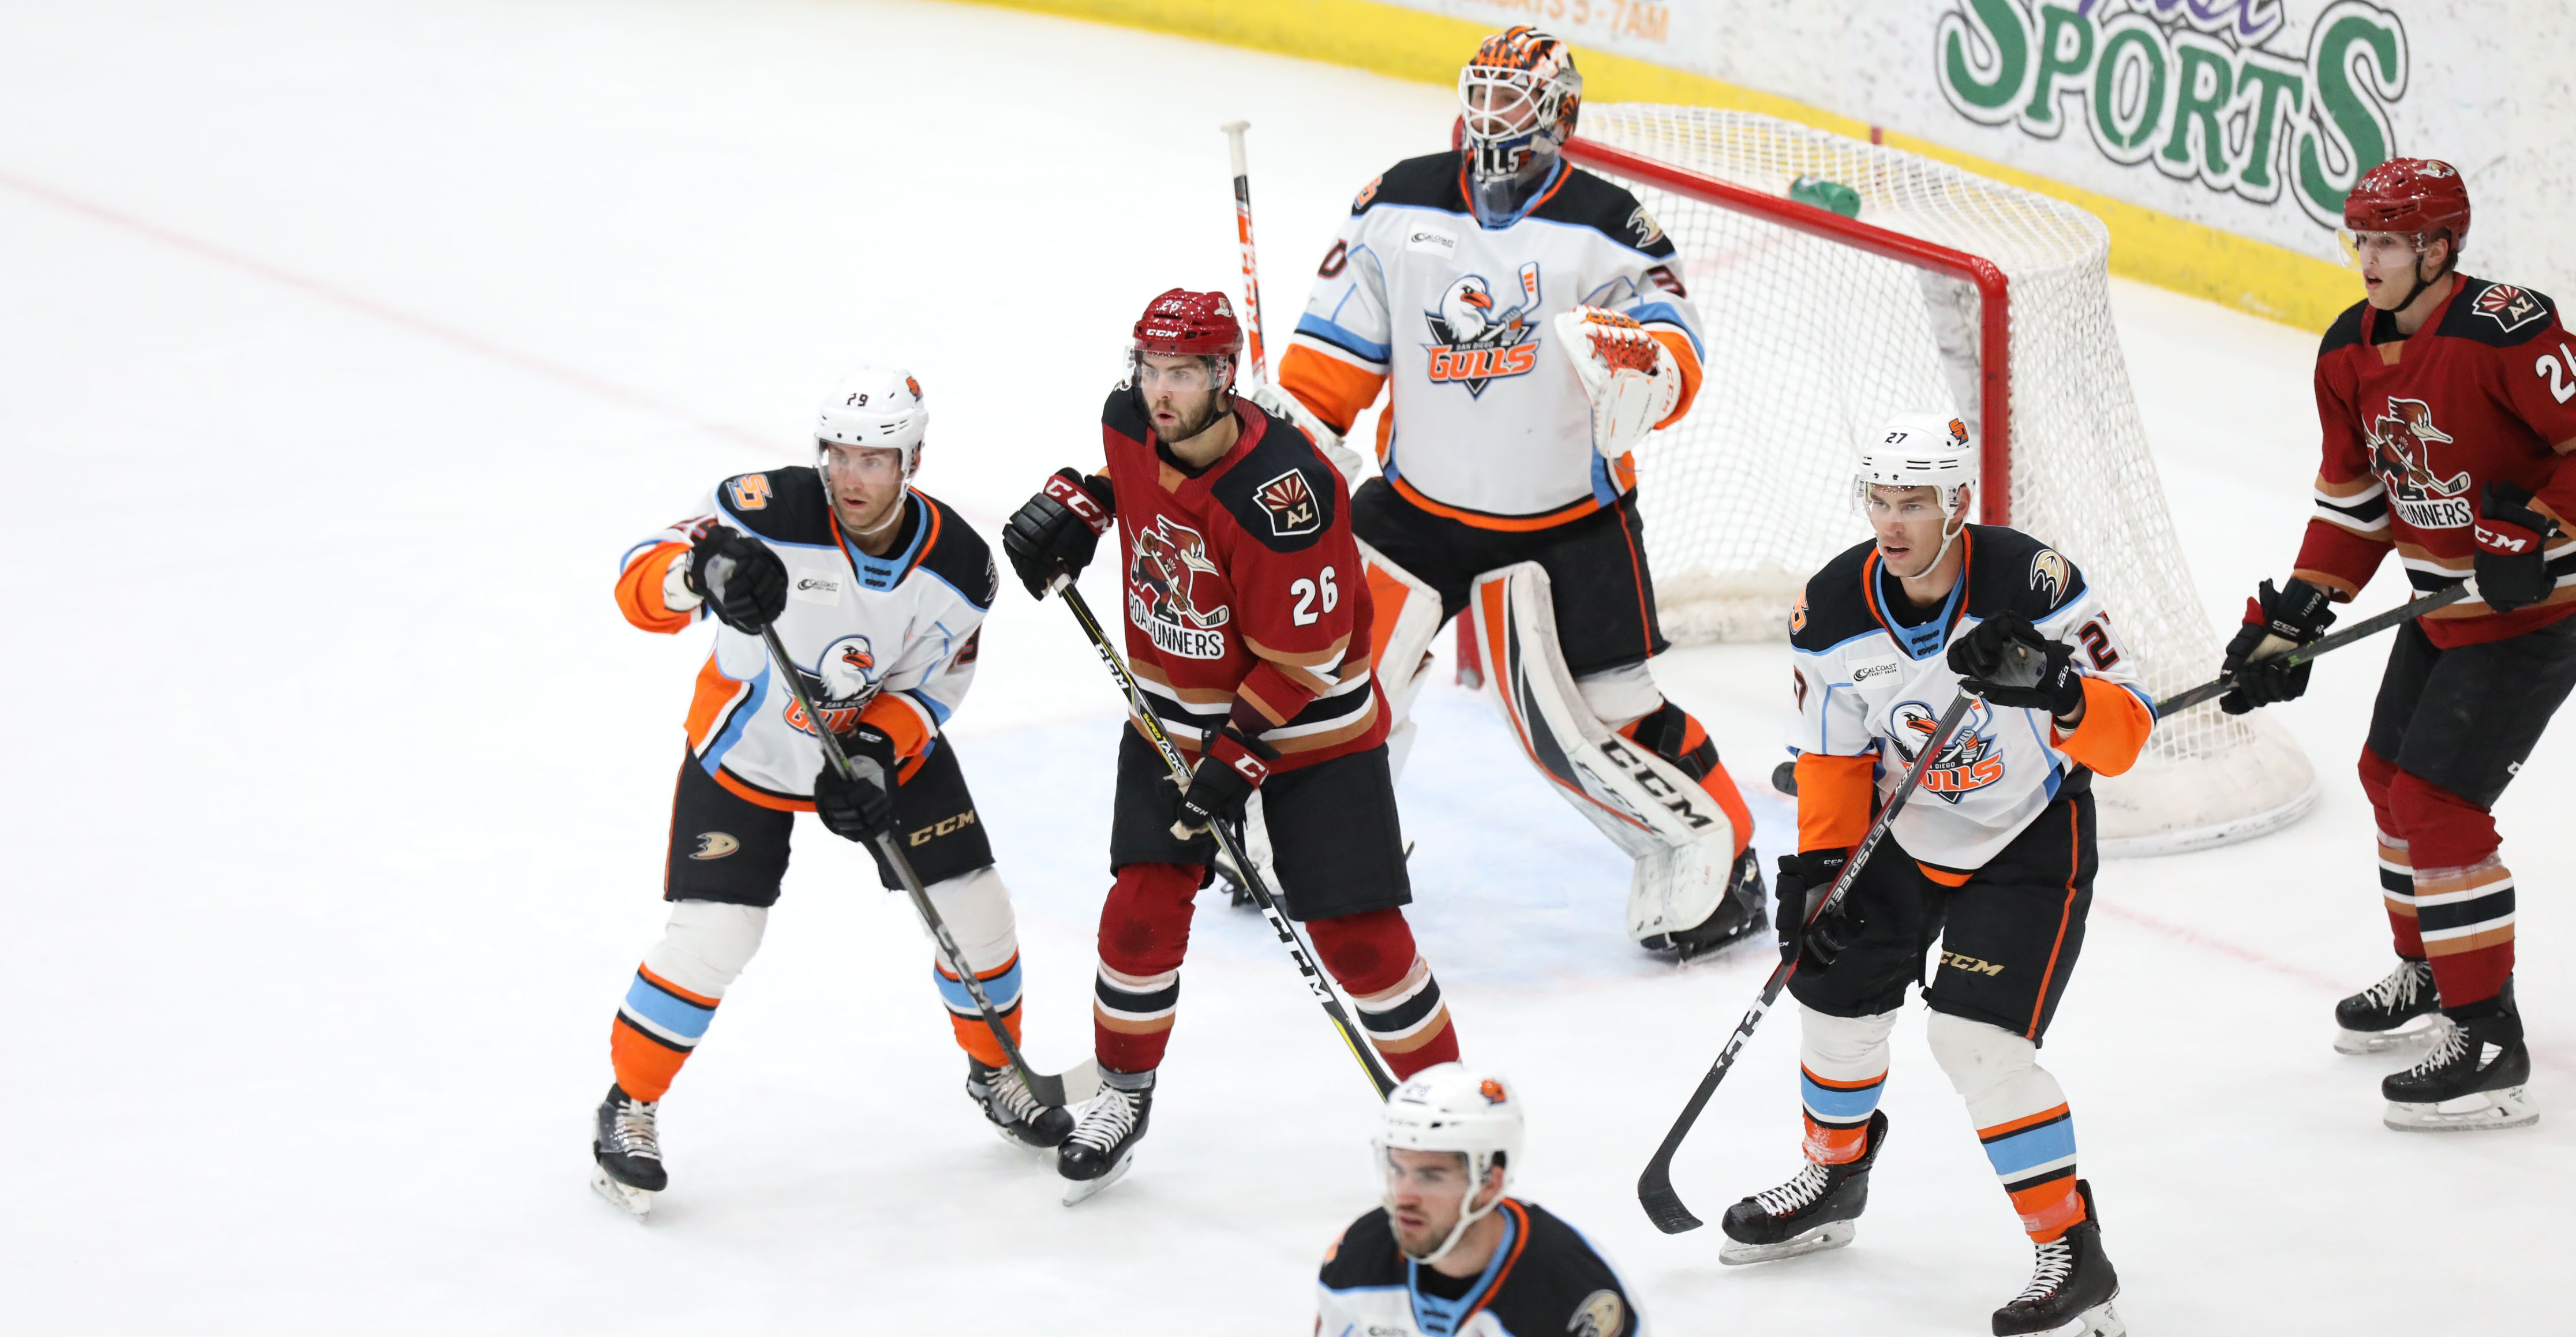 ae263843ab1 The Official Website of the Tucson Roadrunners  NEWS   STATS